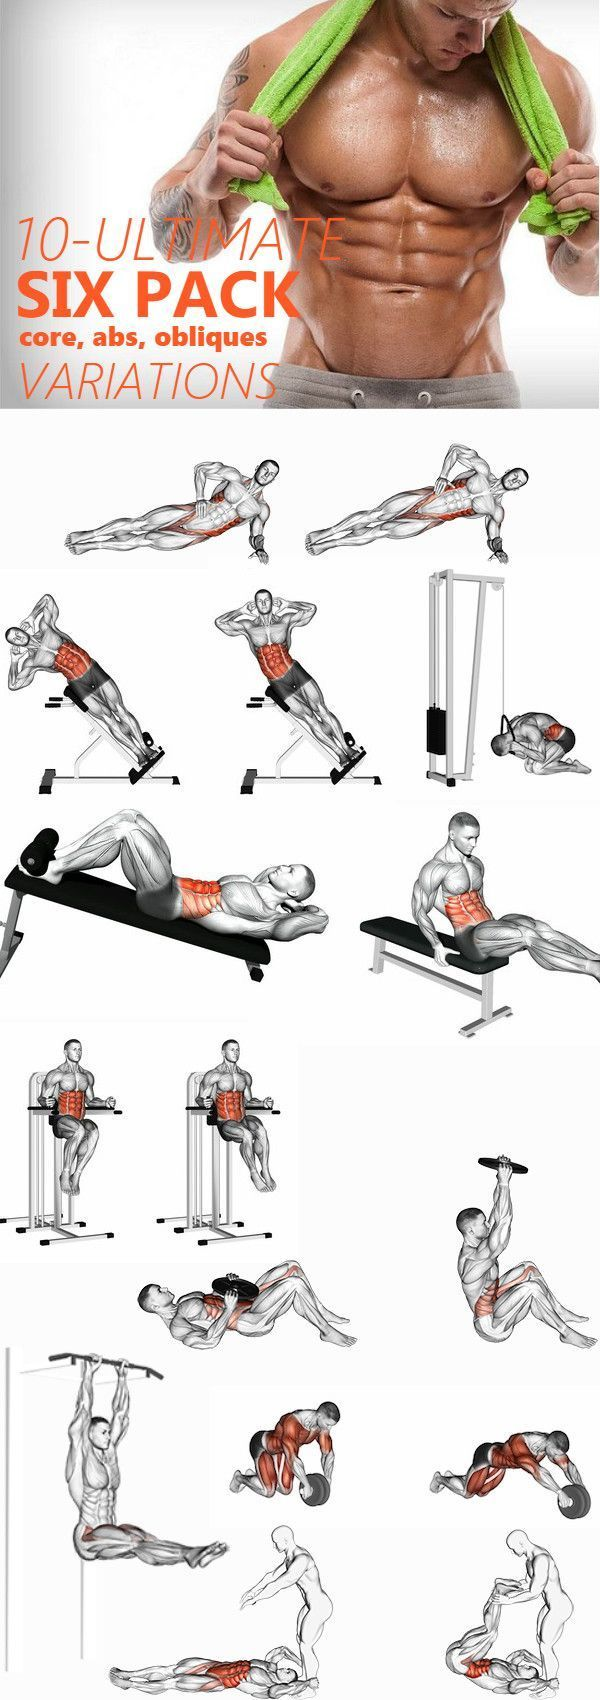 10 Minute Home Bodyweight Abs Crusher Workout #goodcoreexercises